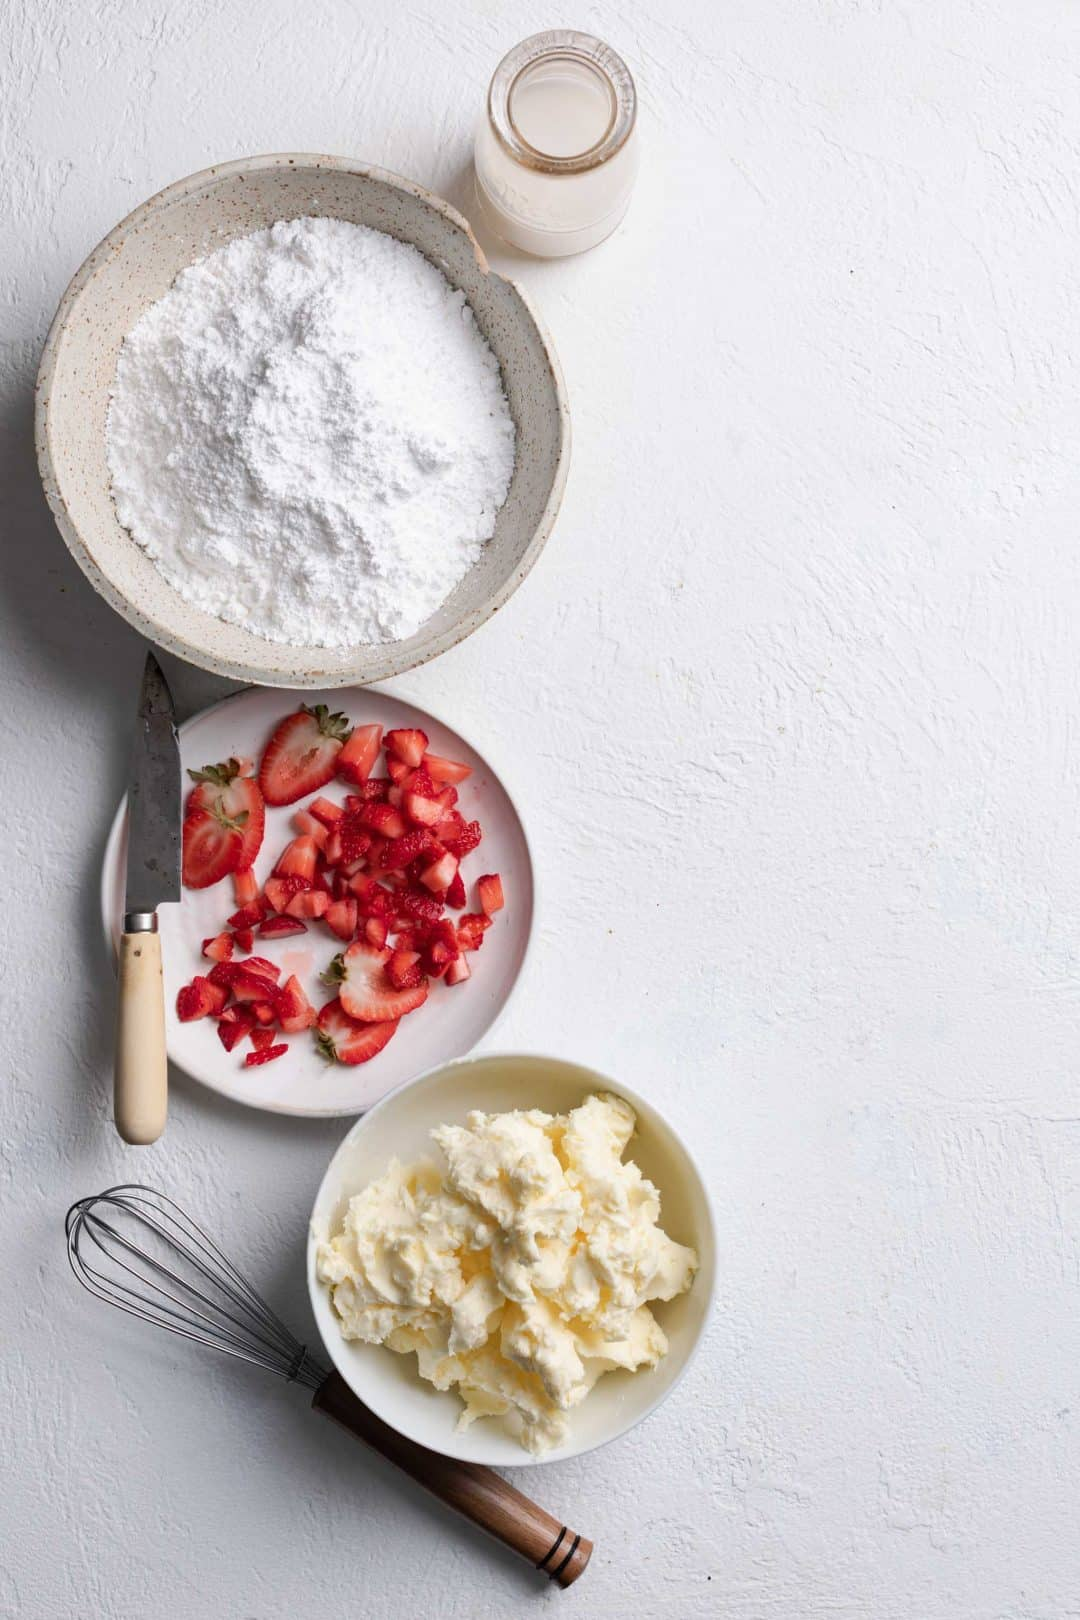 Strawberry Frosting Recipe Ingredients